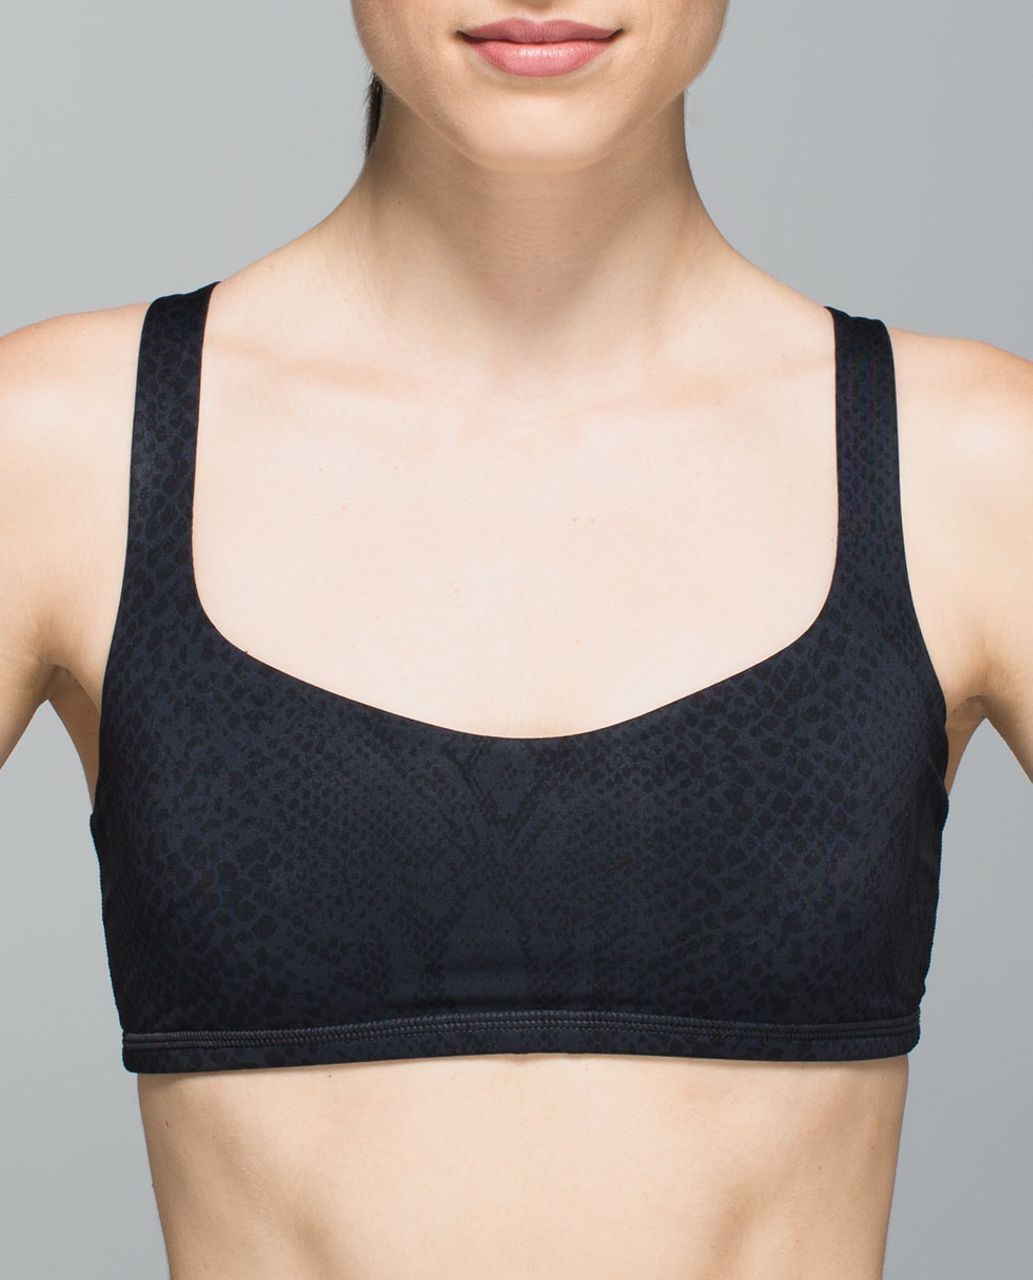 Lululemon Free To Be Bra - Desert Snake Deep Coal Black / Deep Coal